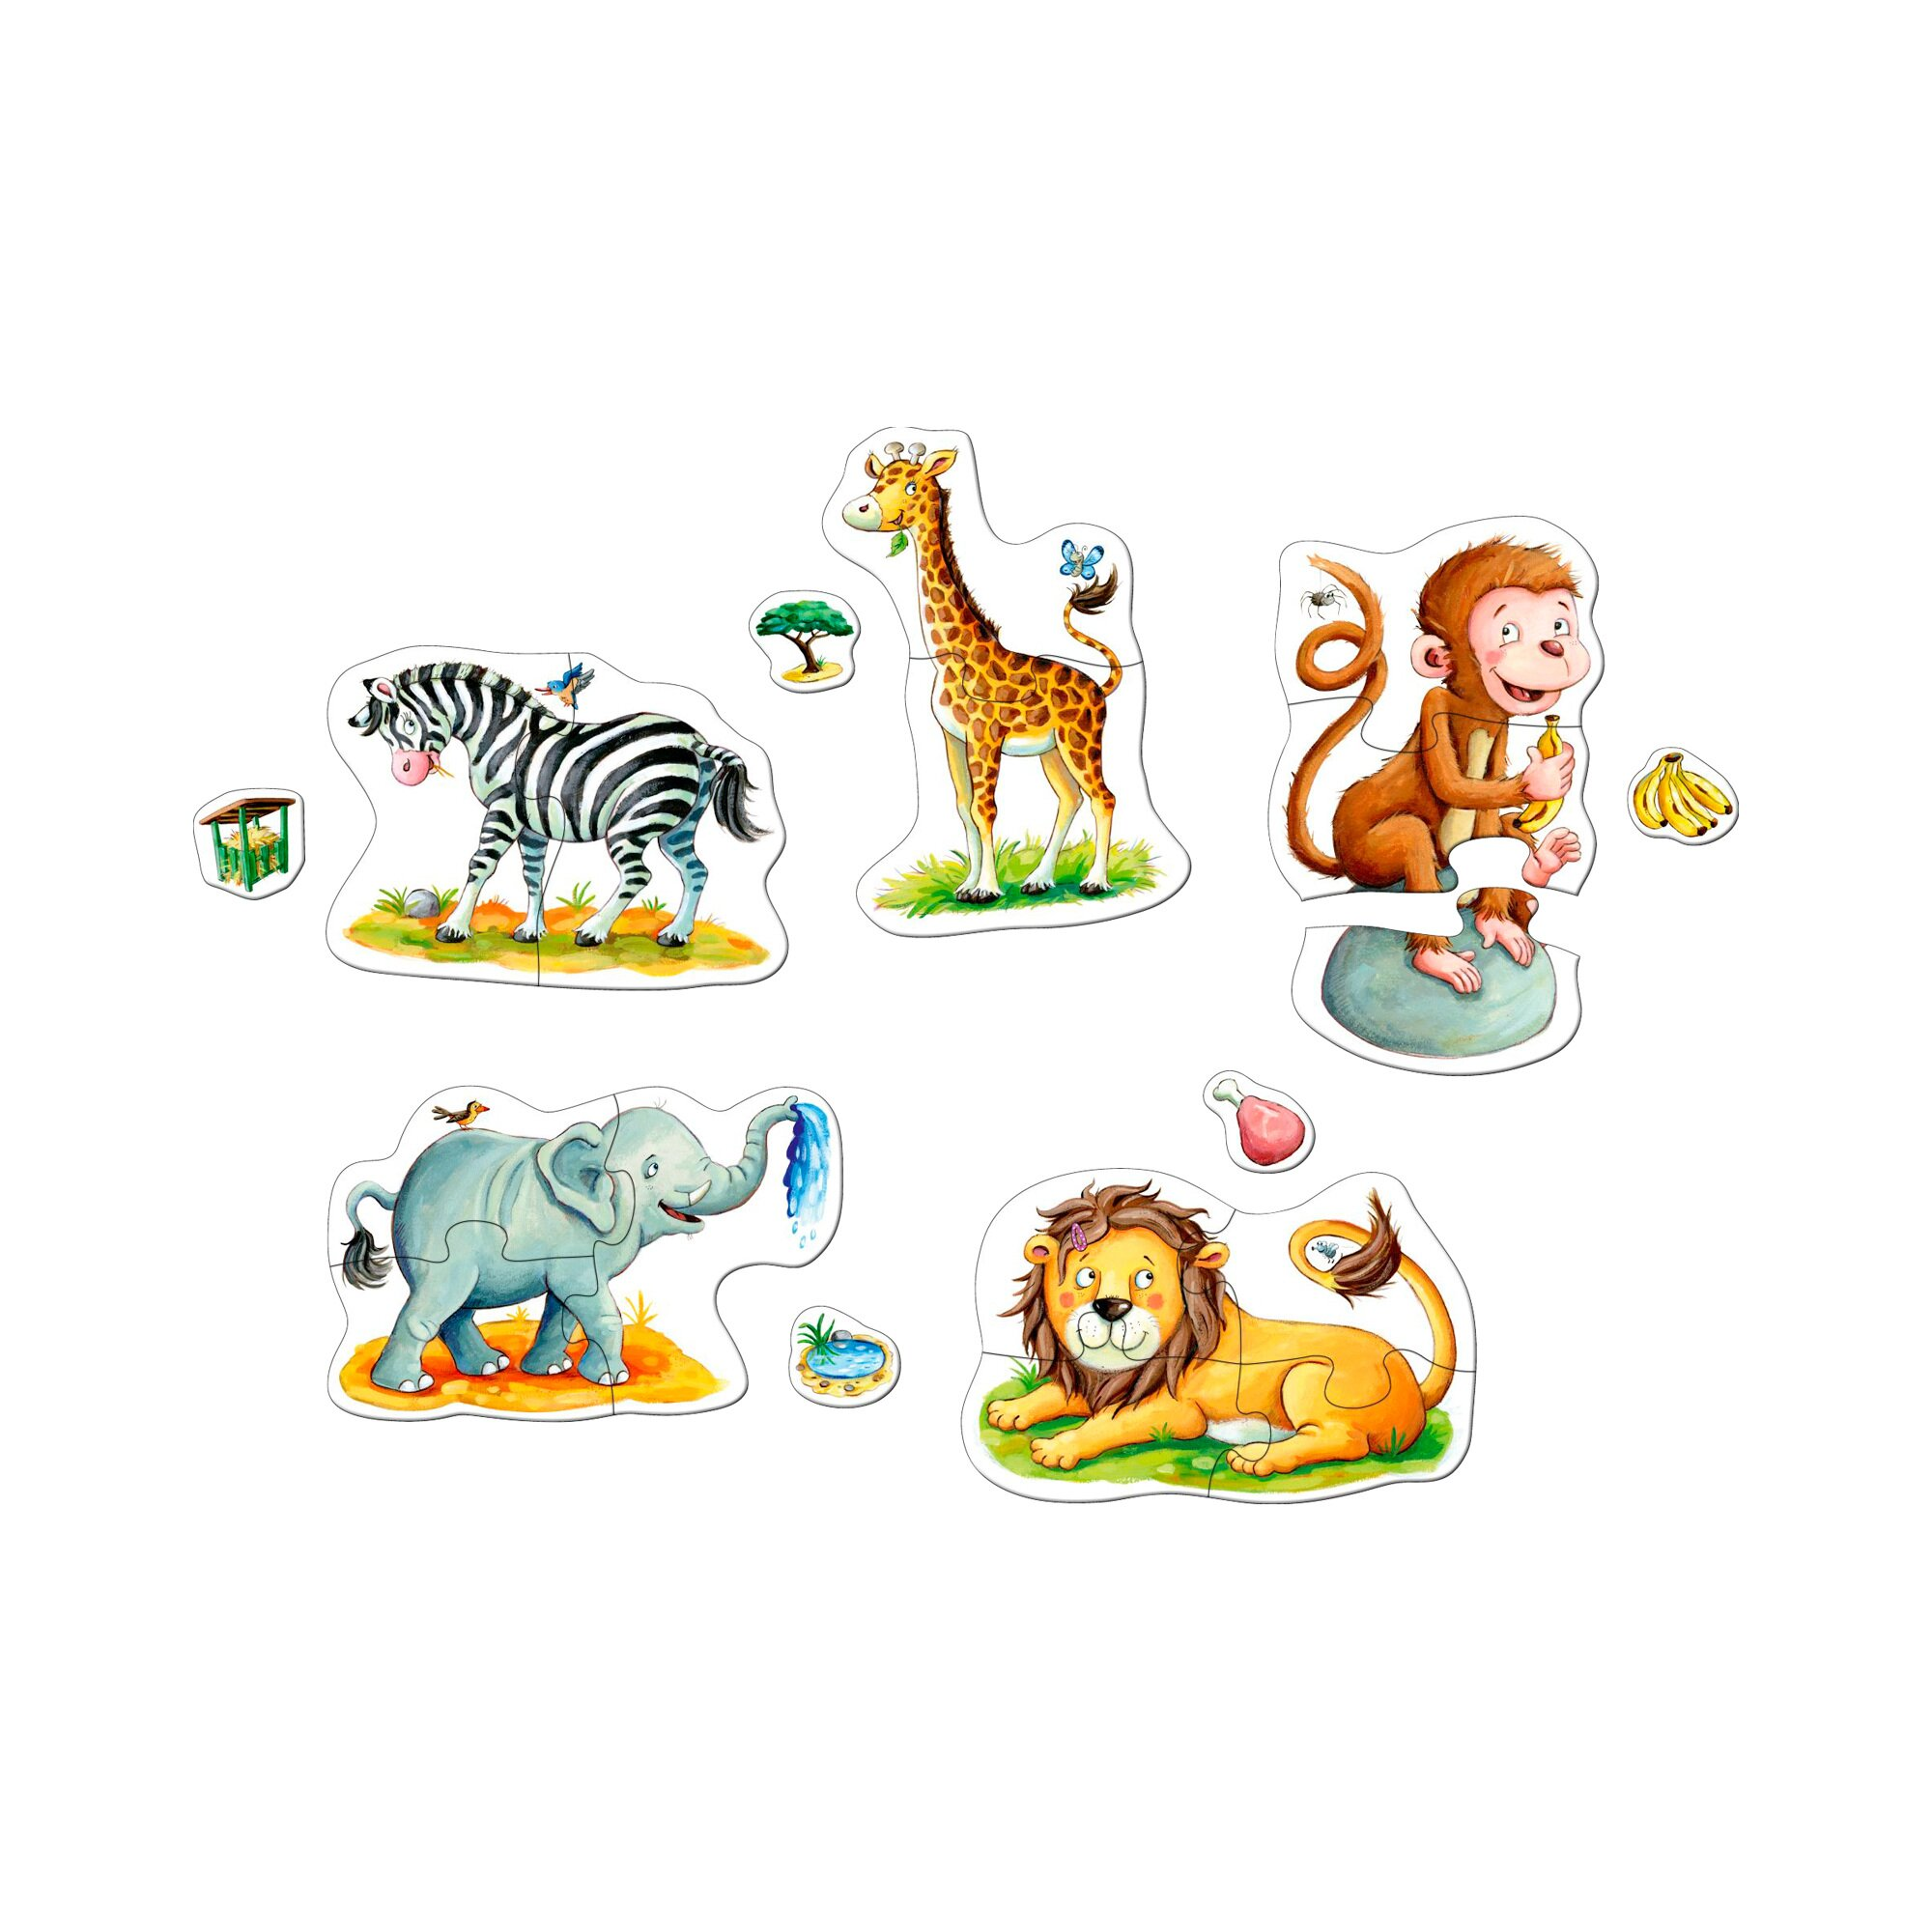 haba-erstes-puzzle-zootiere